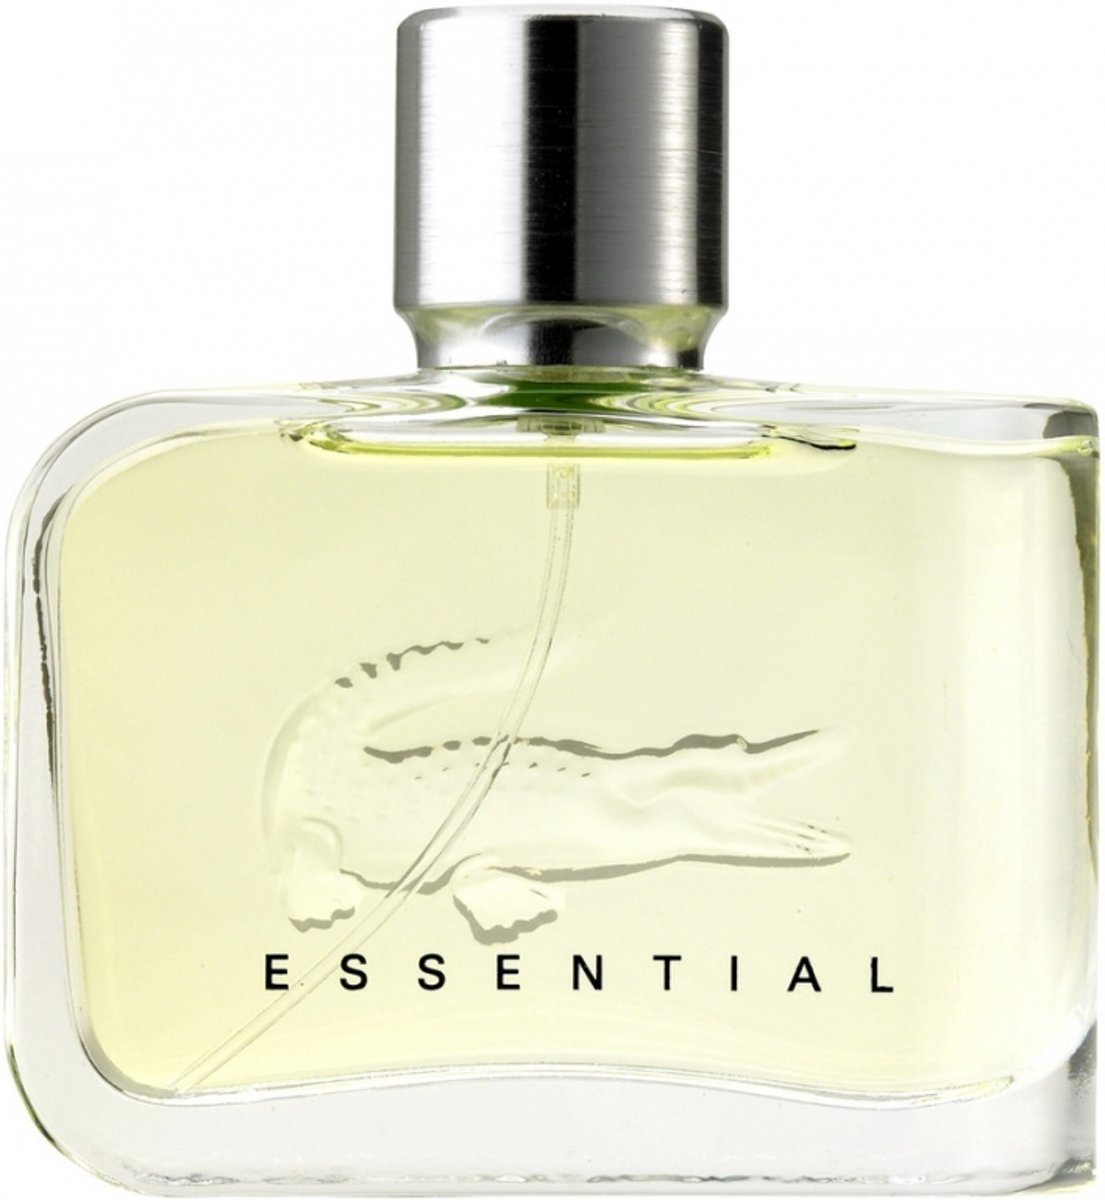 Lacoste Essential for Men - 75 ml - Eau de toilette